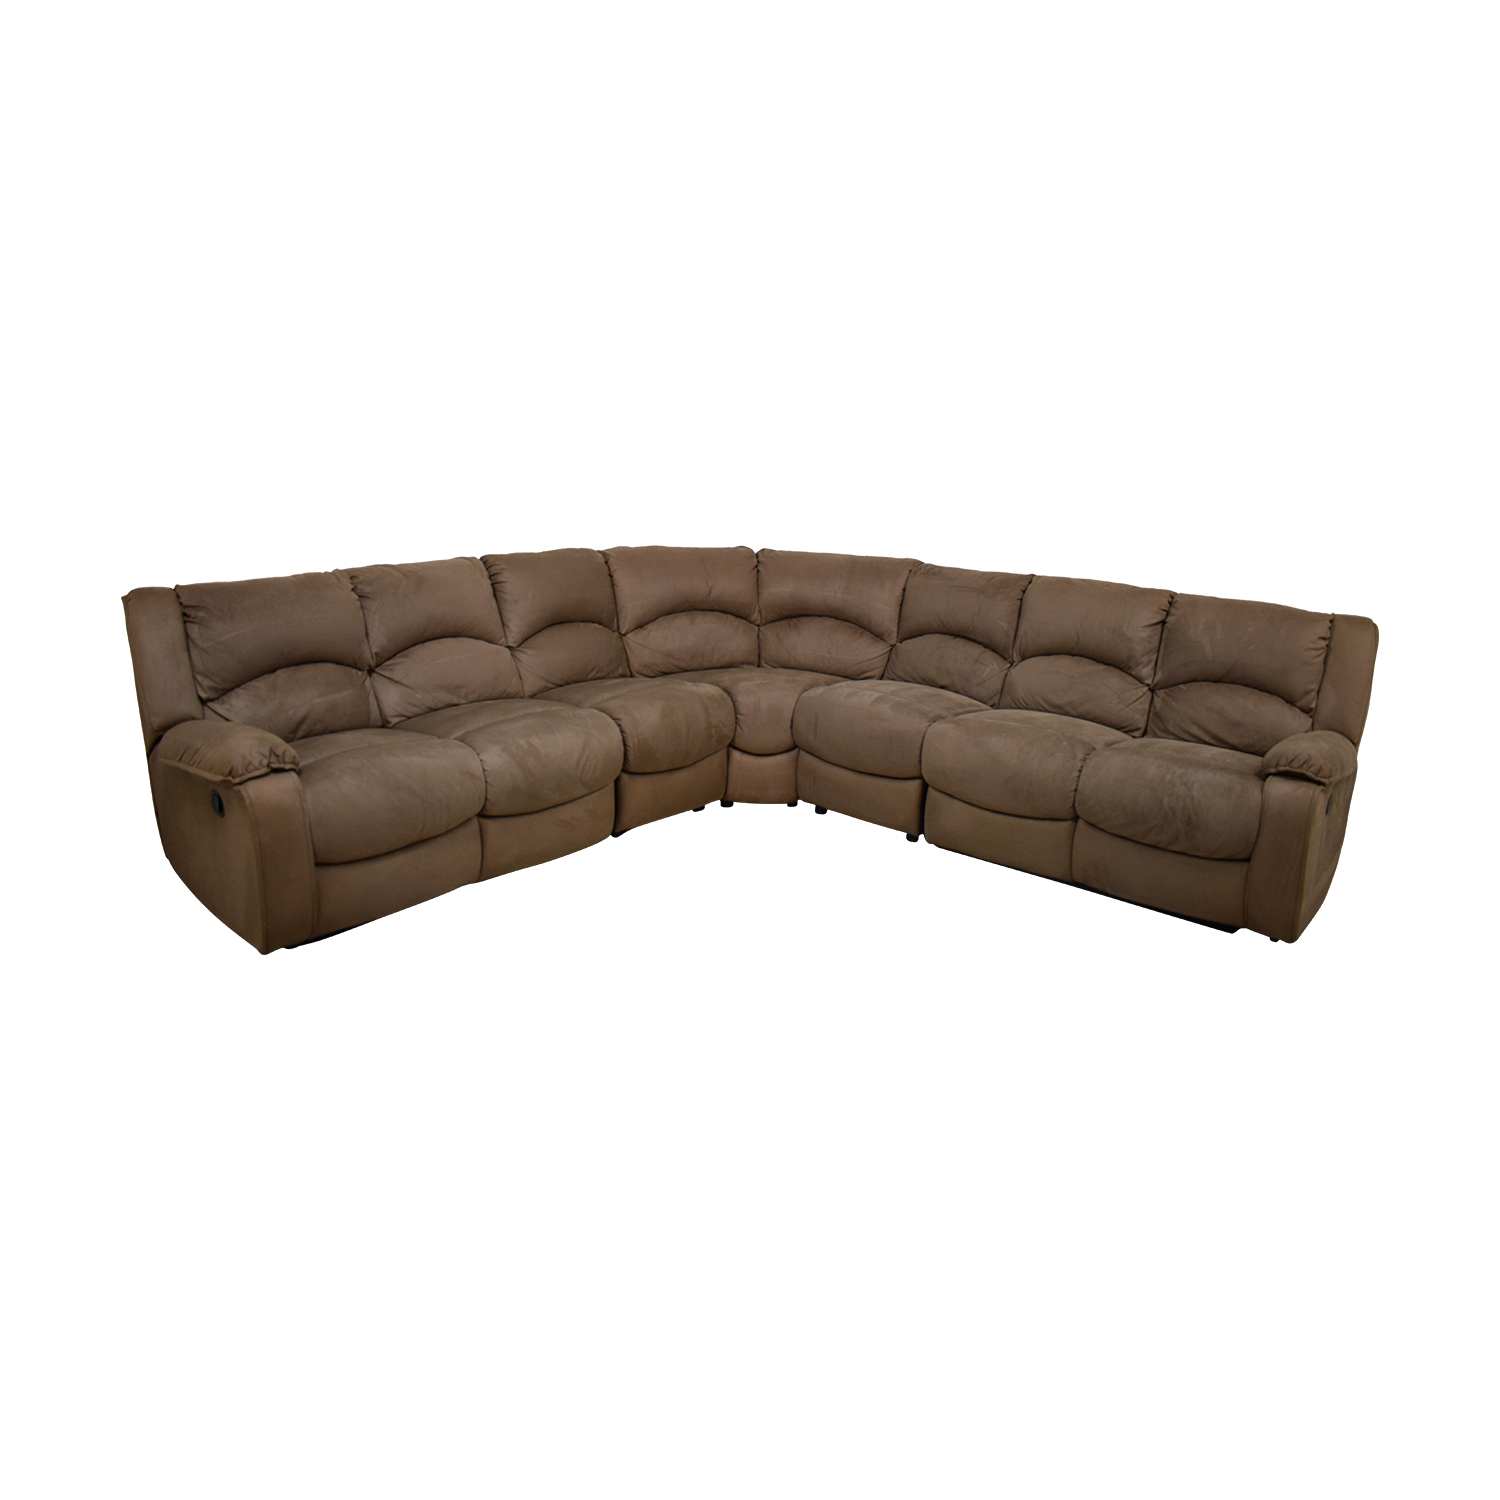 Raymour & Flanigan Raymour & Flanigan Mocha Microfiber L-Shaped Sectional used